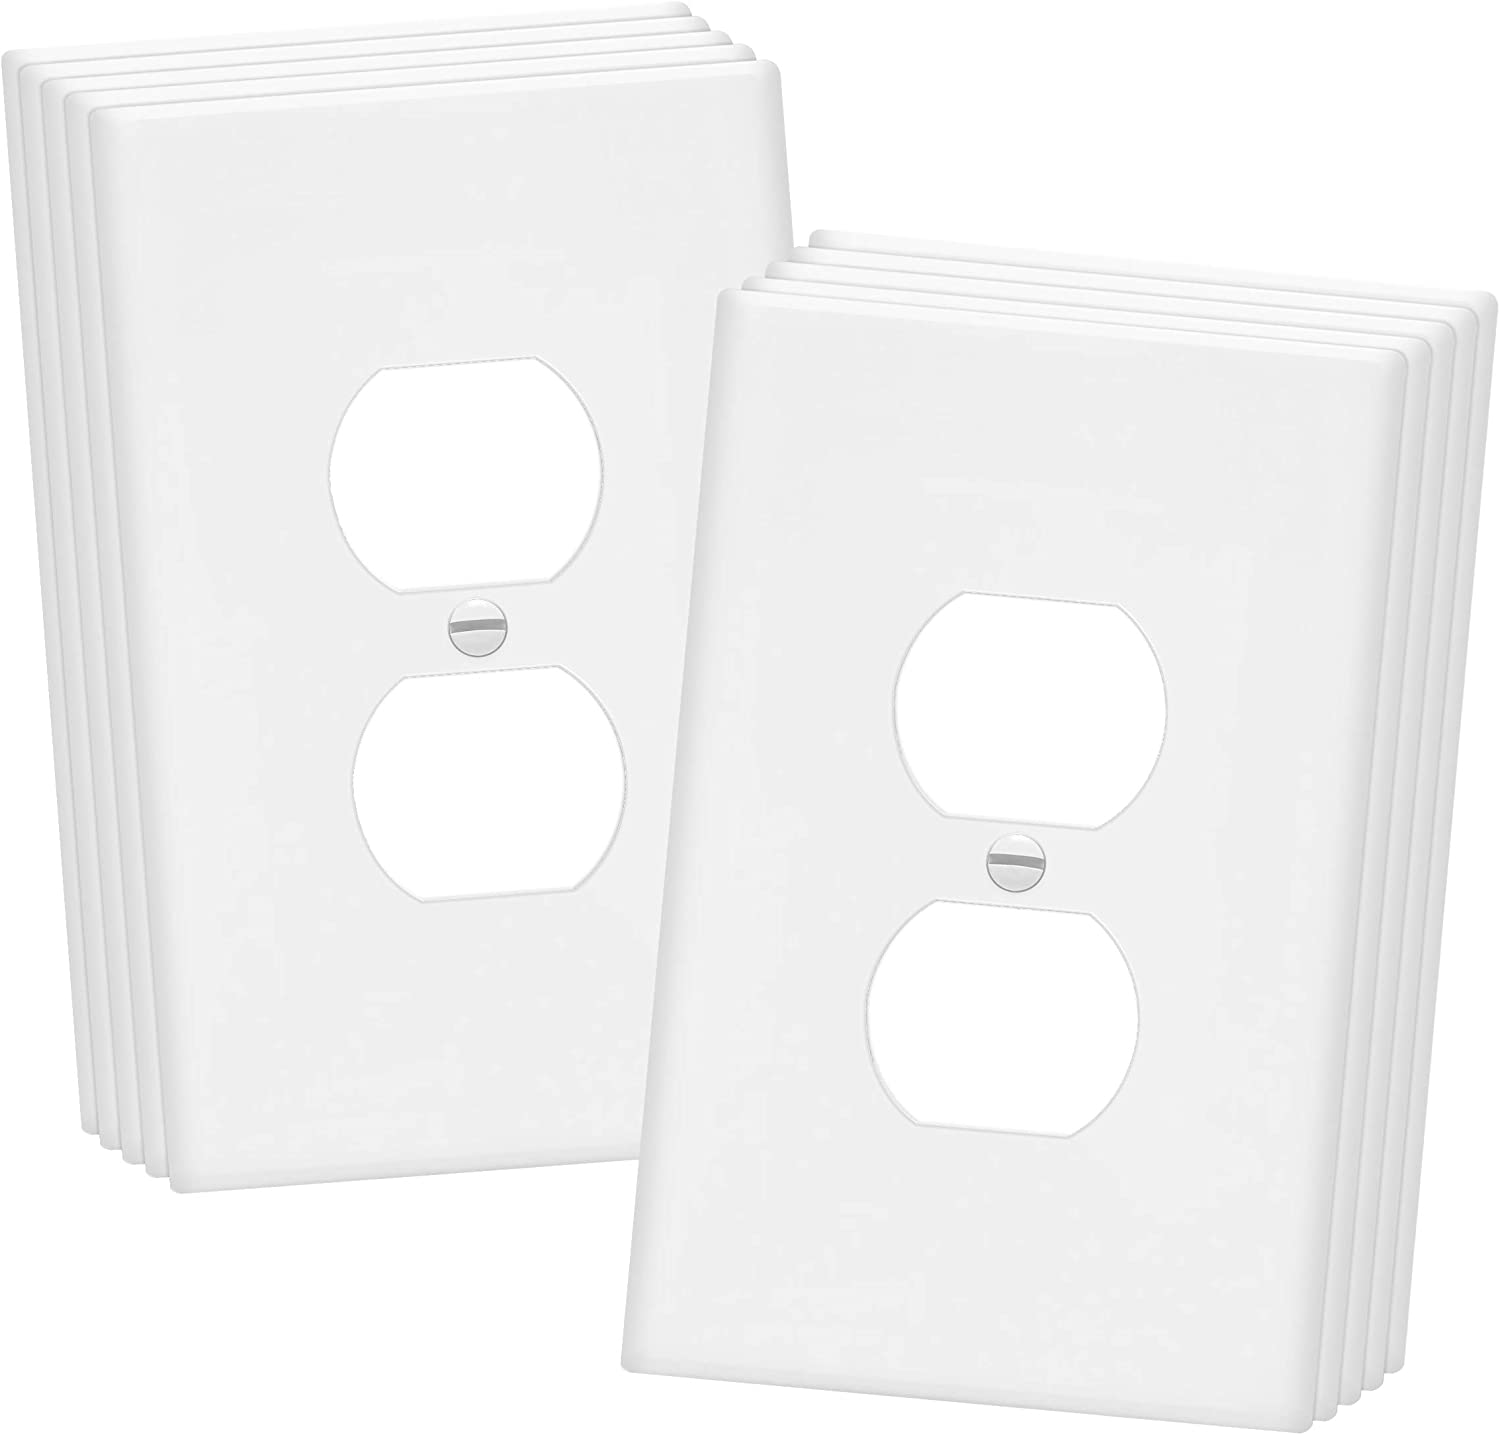 "ENERLITES Duplex Receptacle Outlet Wall Plate, Over-Size 1-Gang 5.5"" x 3.5"", Polycarbonate Thermoplastic, 8821O-W-10PCS, White (10 Pack), 10"